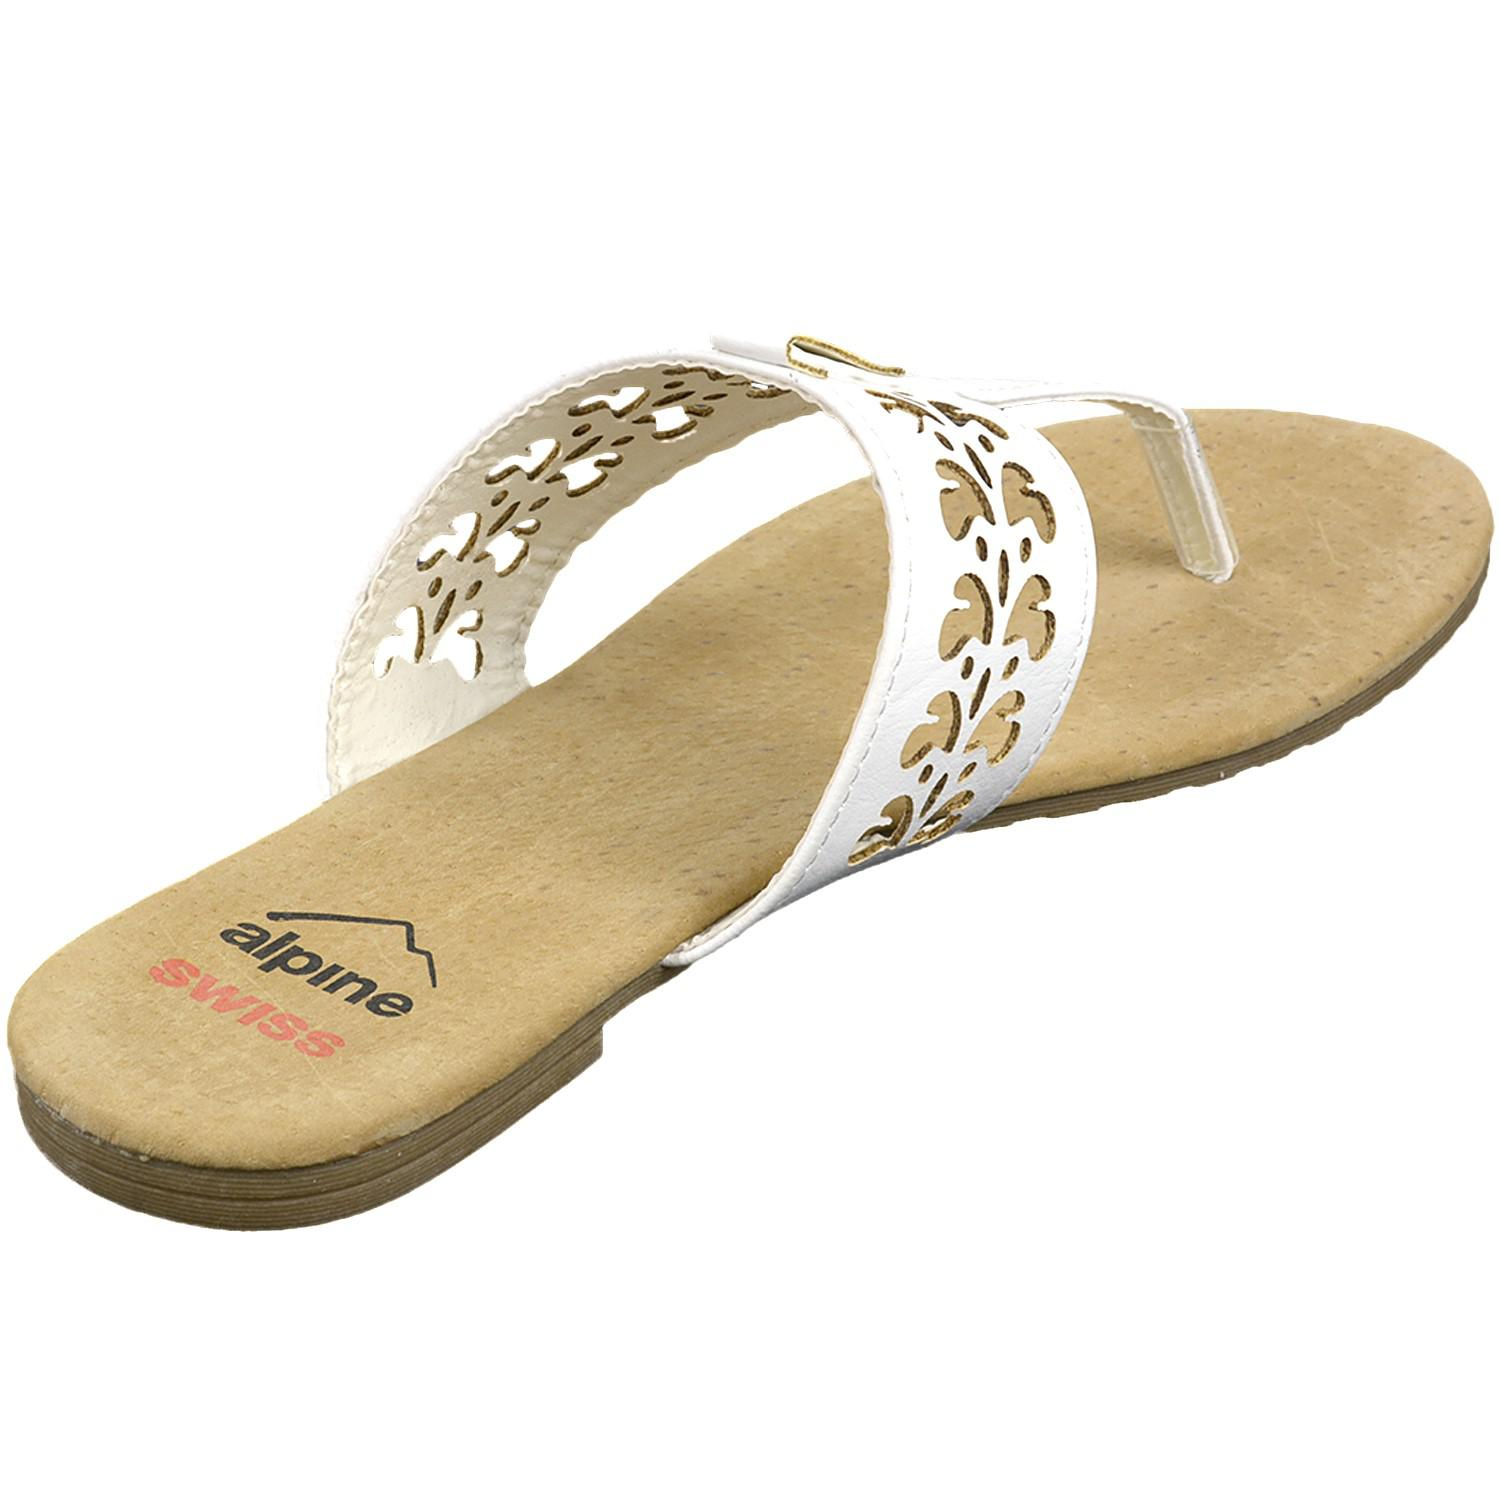 ce597f8ed48 Lyst - Alpine Swiss Womens Suede Sandals Floral Cut Out Faux Leather ...